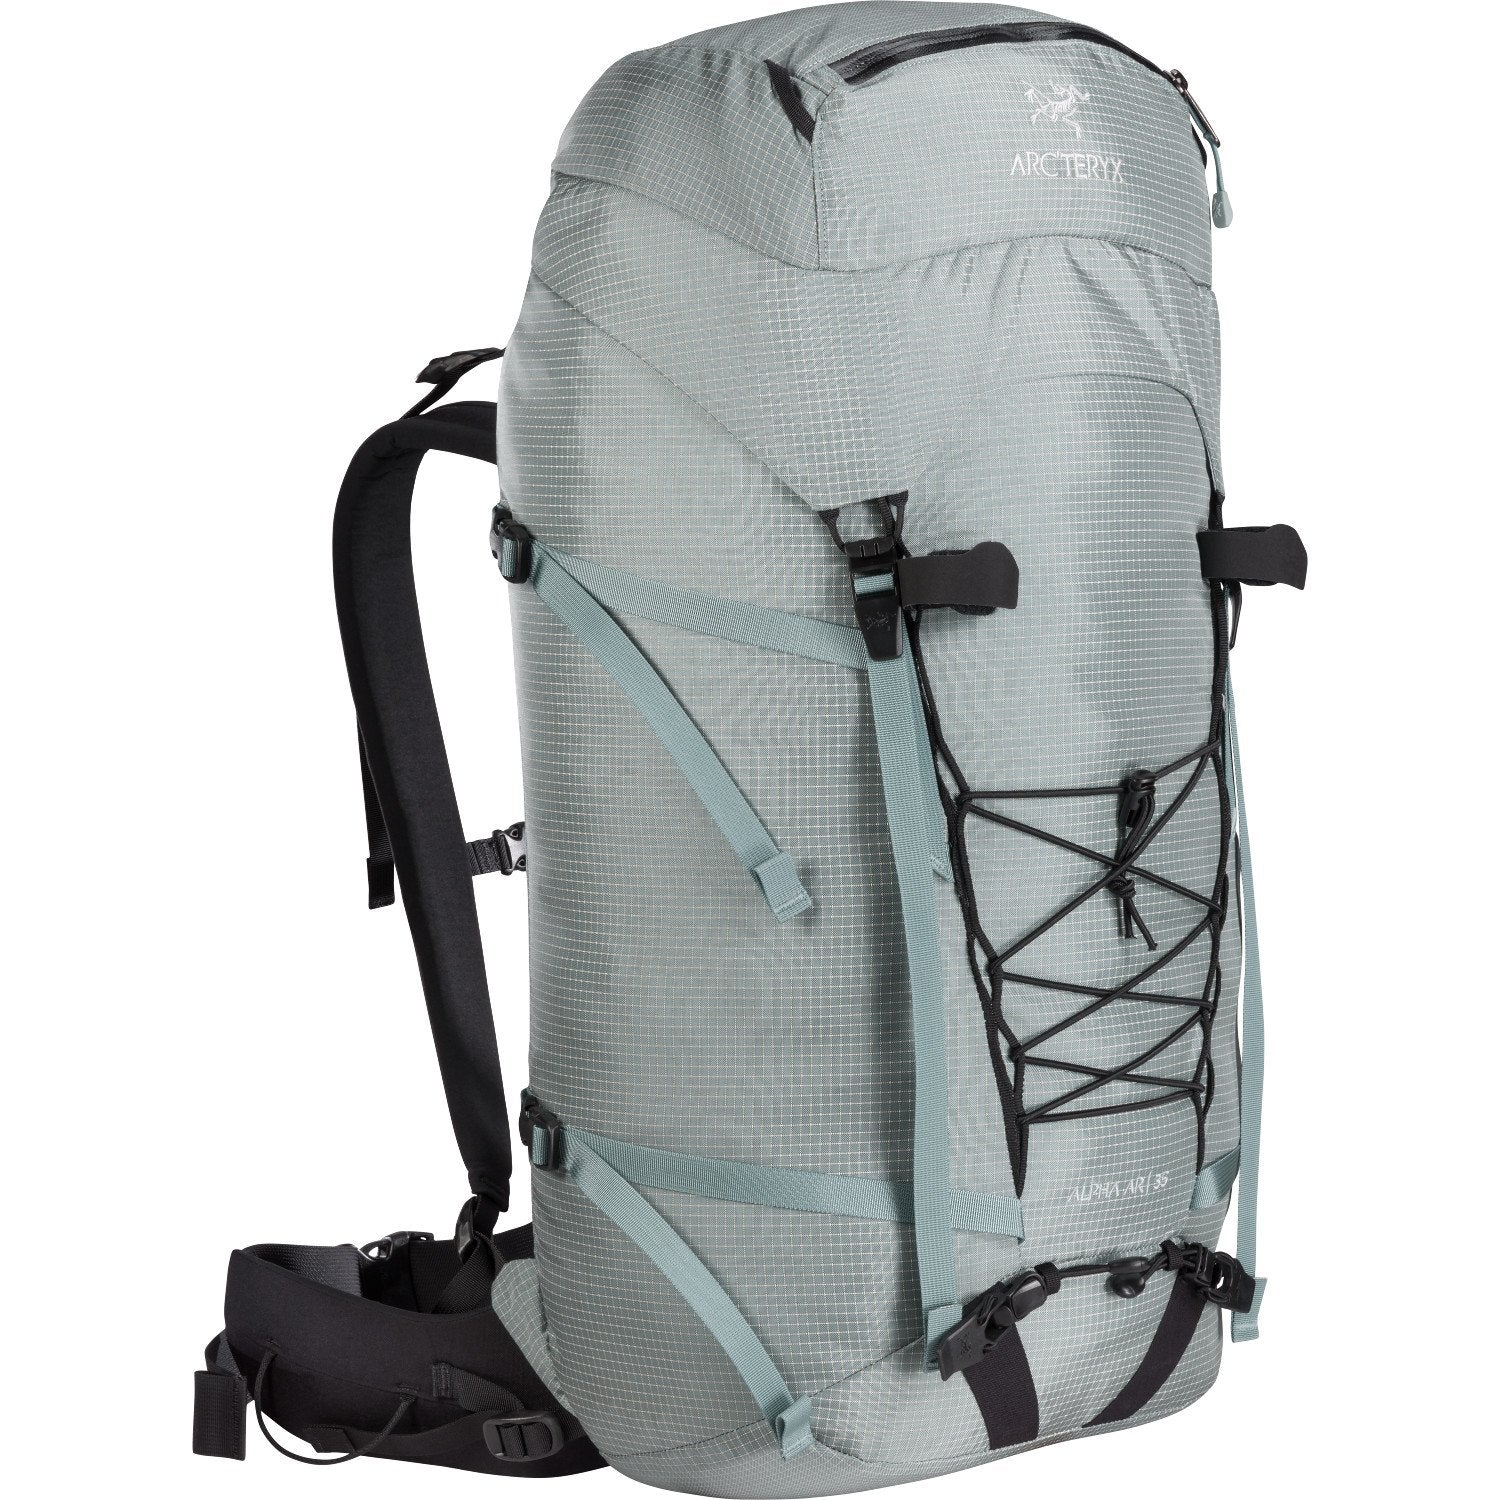 ArcTeryx Alpha AR 35 climbing rucksack, in grey colour